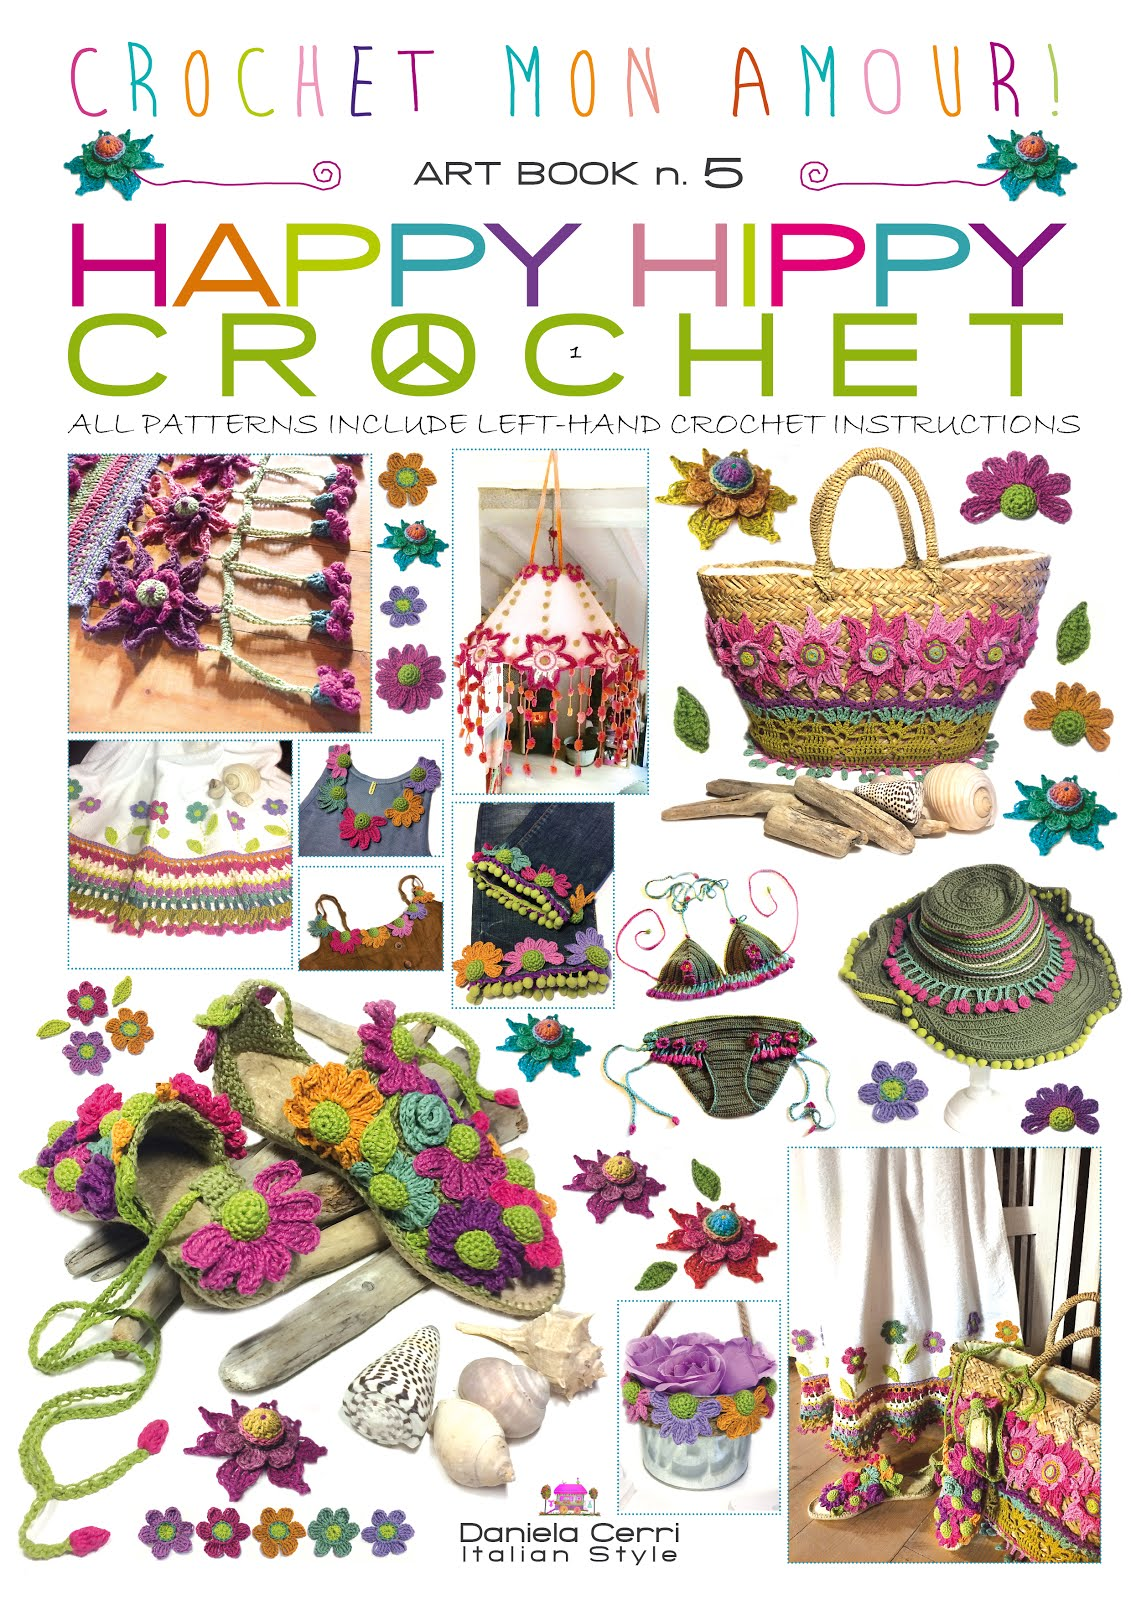 ART-BOOK n. 5: HAPPY HIPPY CROCHET in English